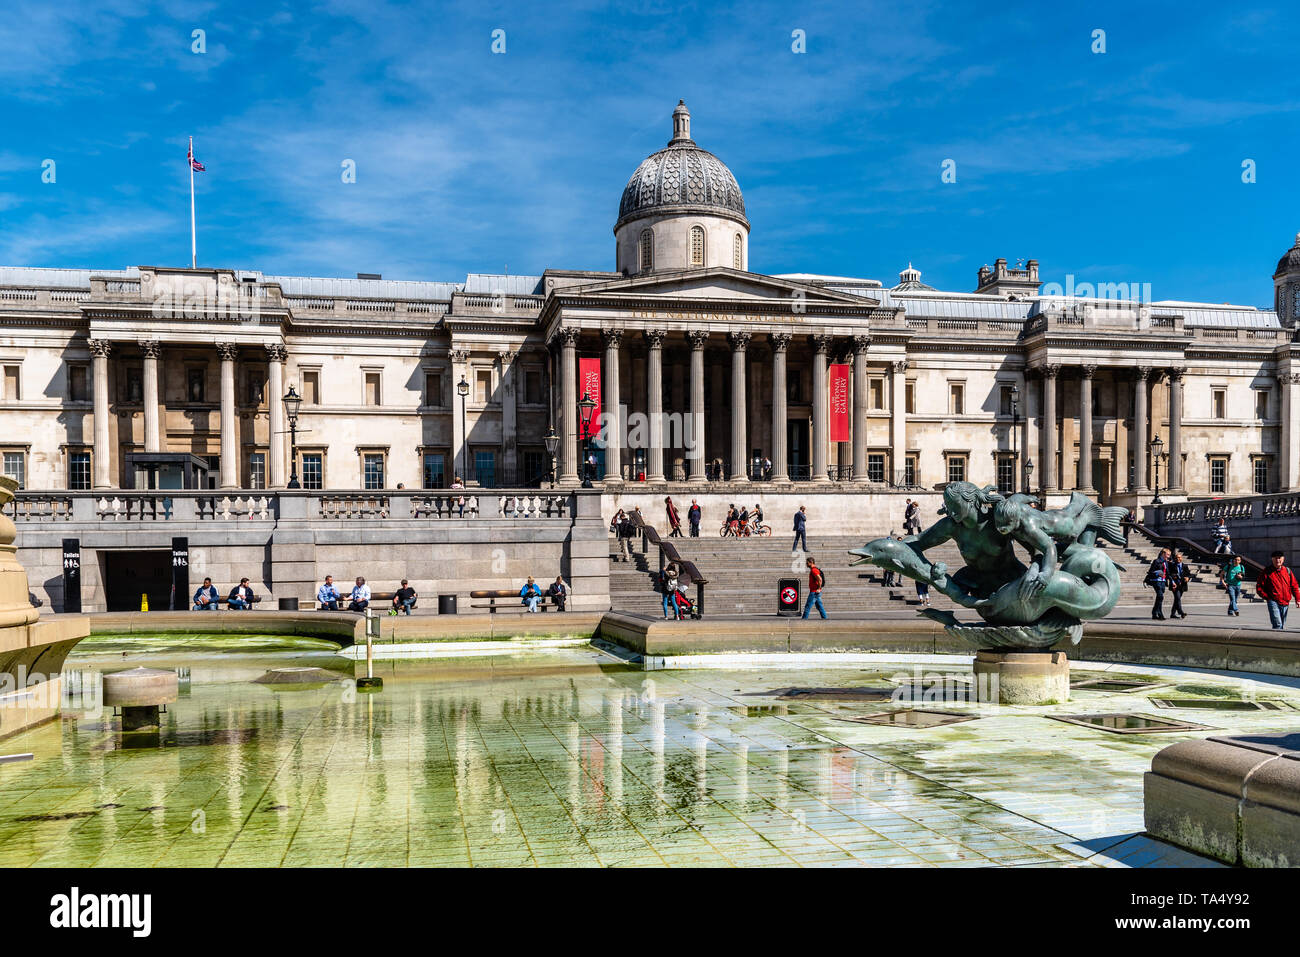 London, UK - May 14, 2019: The National Gallery of London in Trafalgar Square against blue sky a sunny day Stock Photo